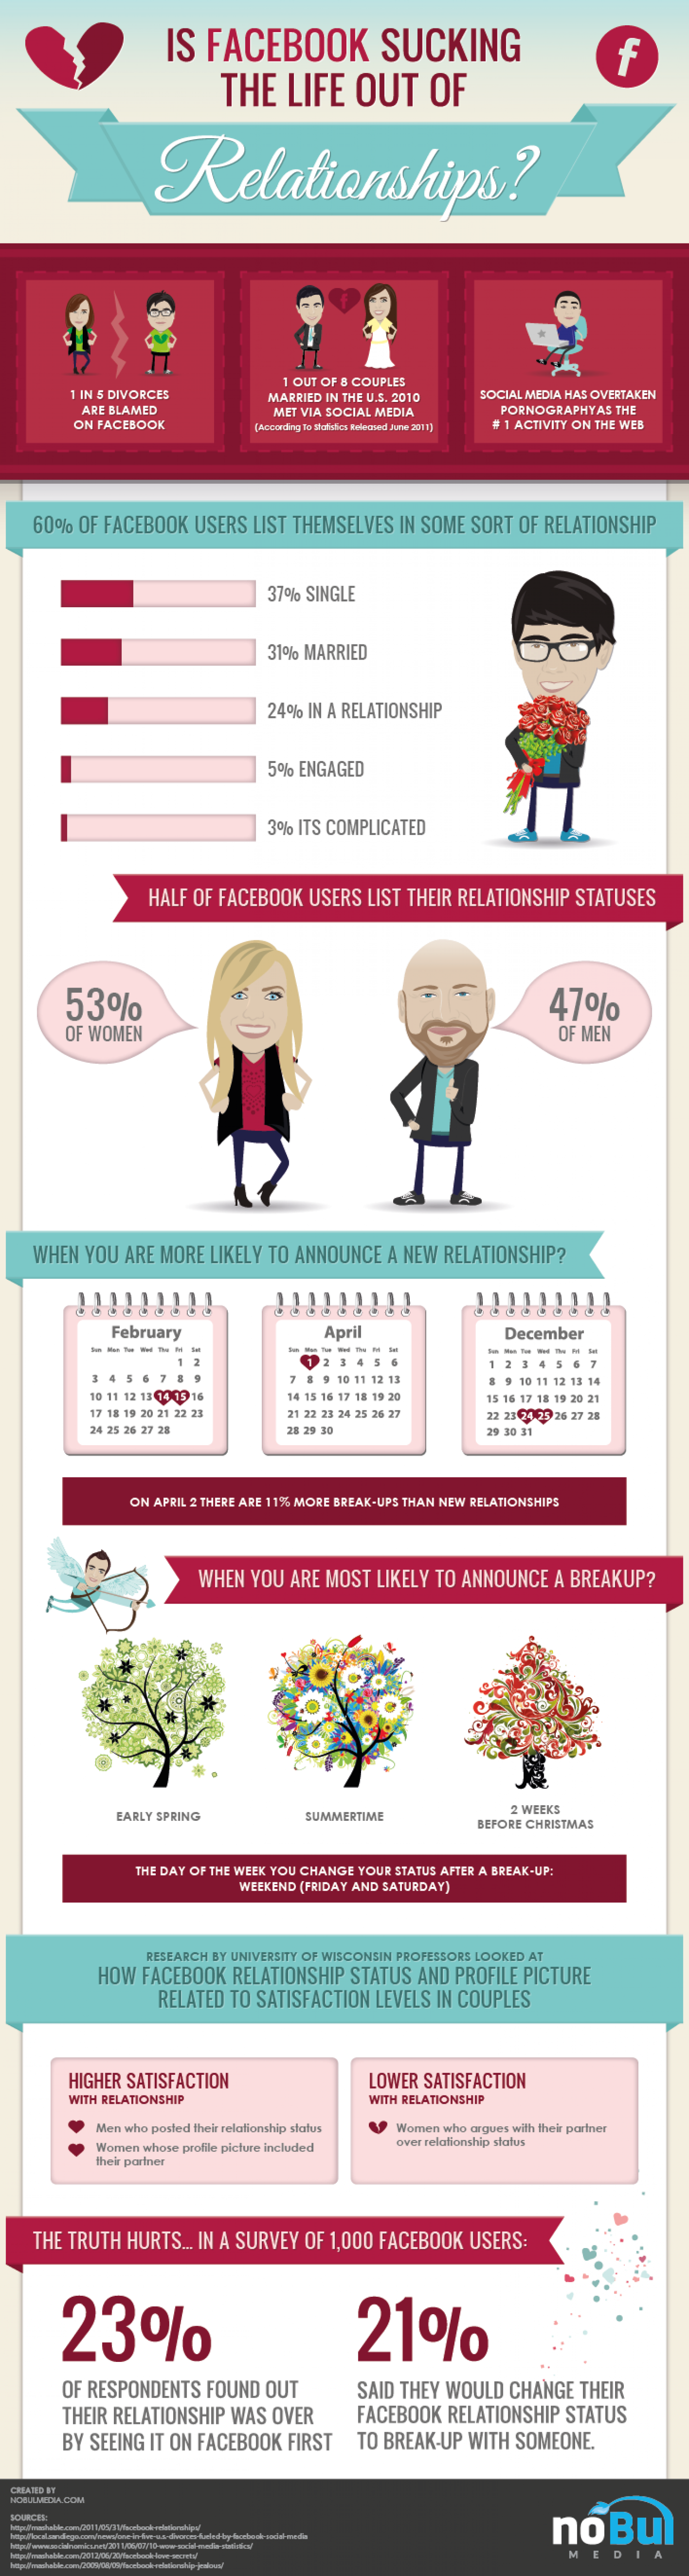 Is Facebook sucking the life out of relationships? Infographic